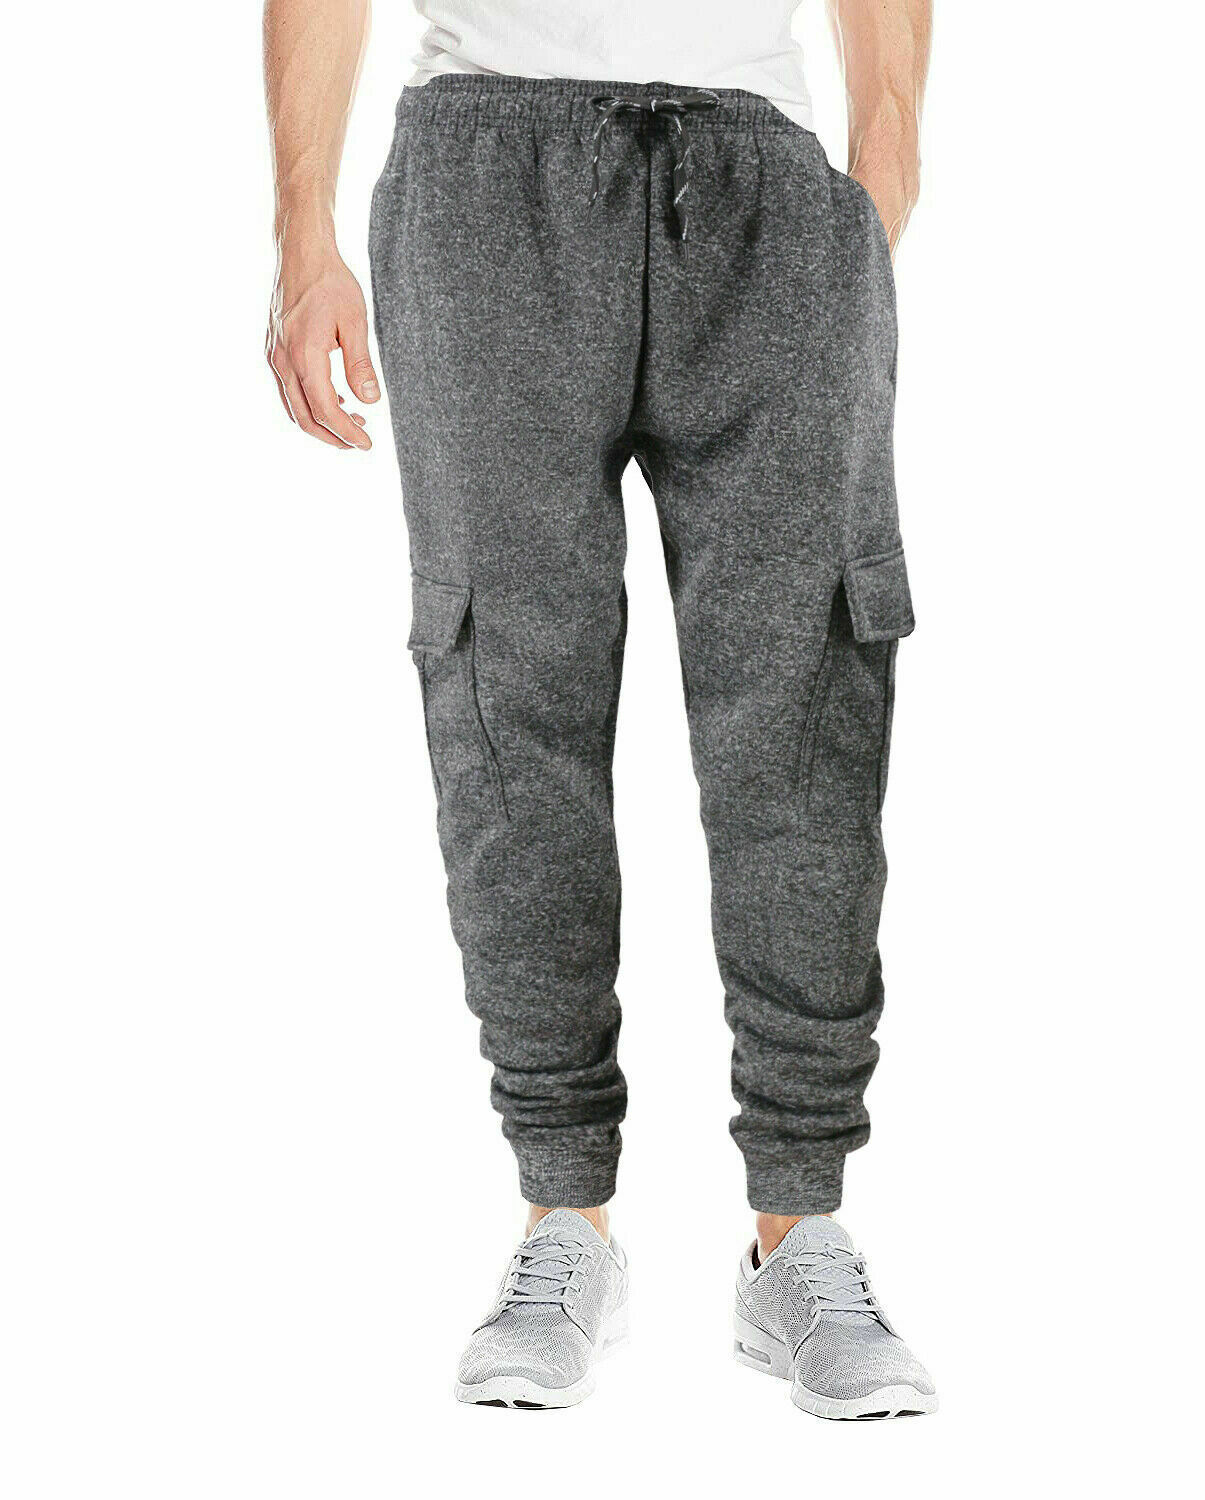 Men's Casual Jogger Pants Slim Fit Sport Workout Sweatpants w/ Defect - XL